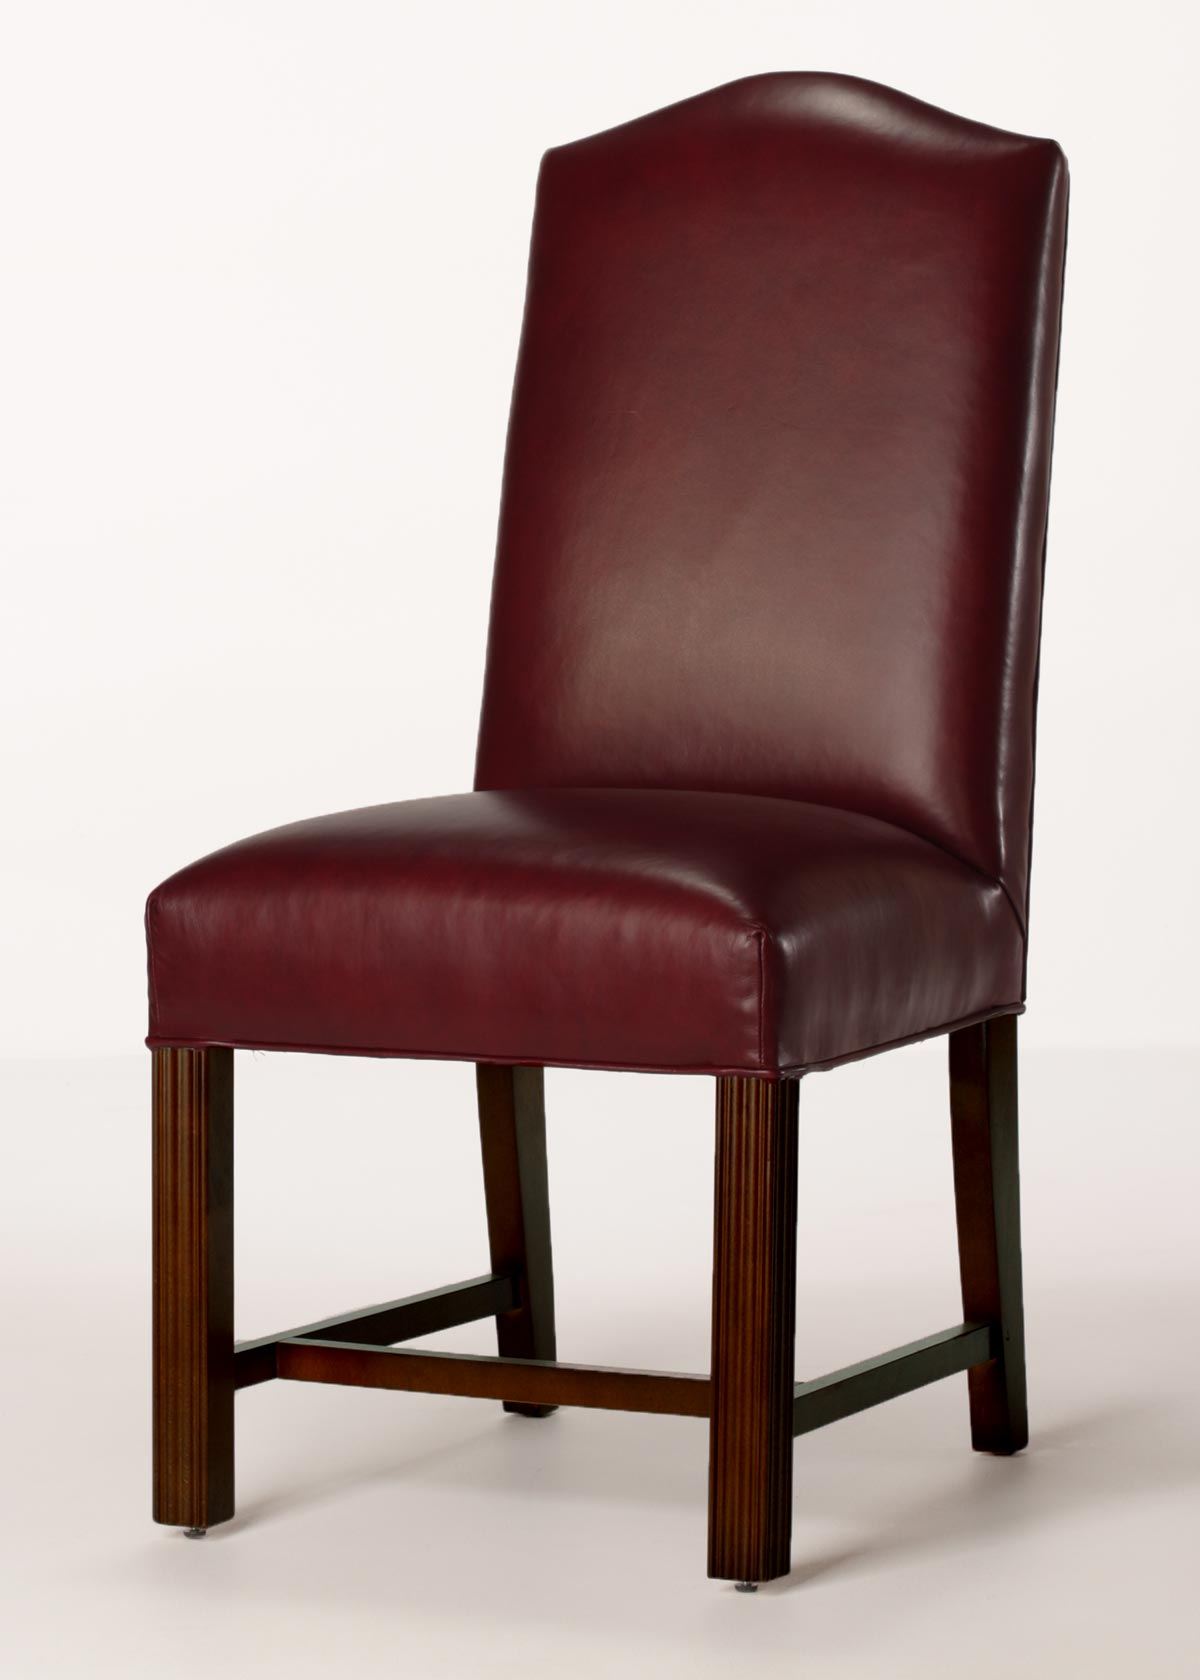 Leather camel back chippendale dining chair with full seat for Leather back dining chairs